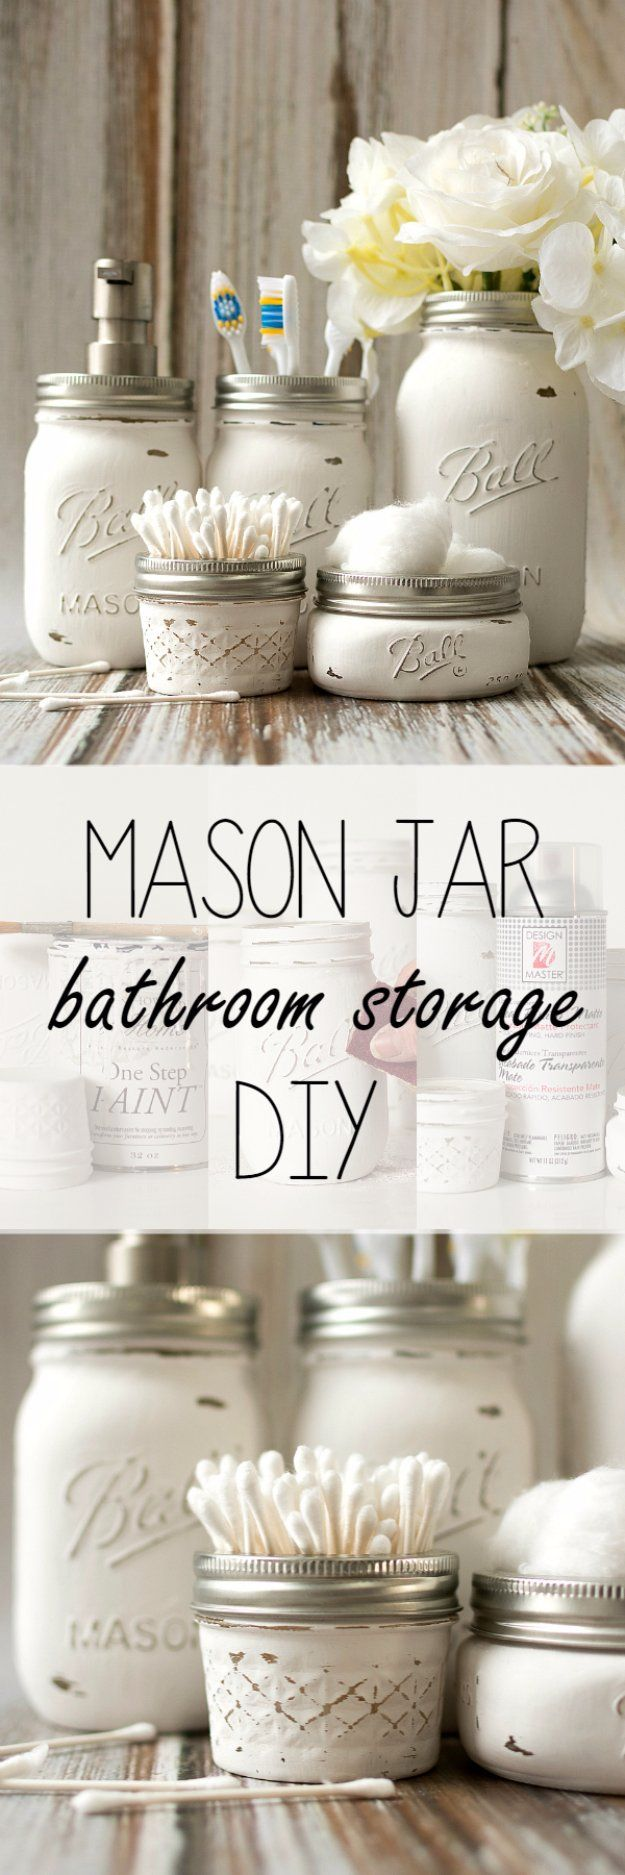 Bathroom Decorating Ideas Diy Pinterest best 10+ bathroom storage diy ideas on pinterest | diy bathroom